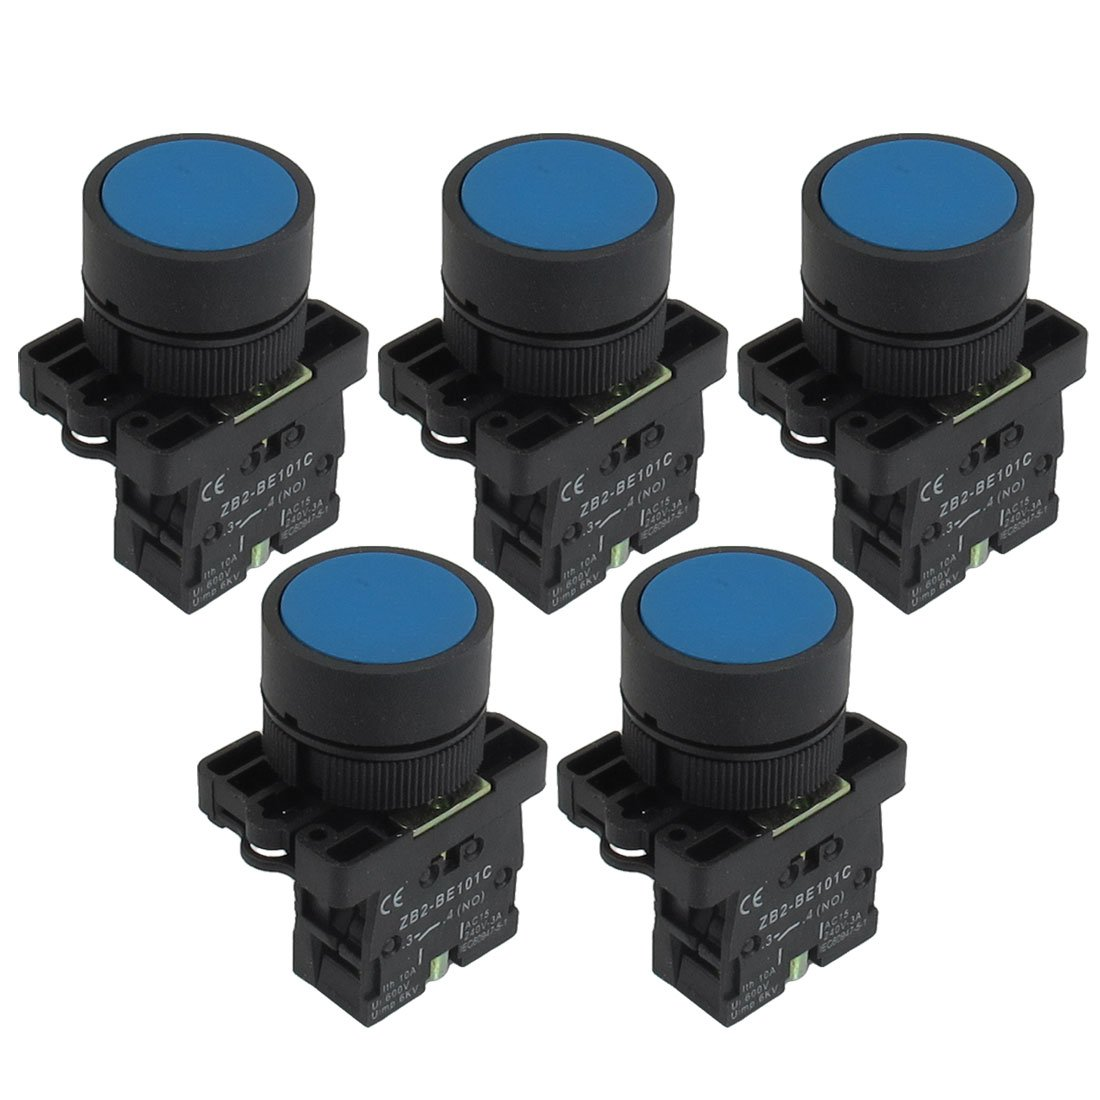 Uxcell a12082000ux0364 1 NO N/O Blue Sign Momentary Push Button Switch, 5 x 22 mm, 600V, 10 Amp, ZB2-BE101C